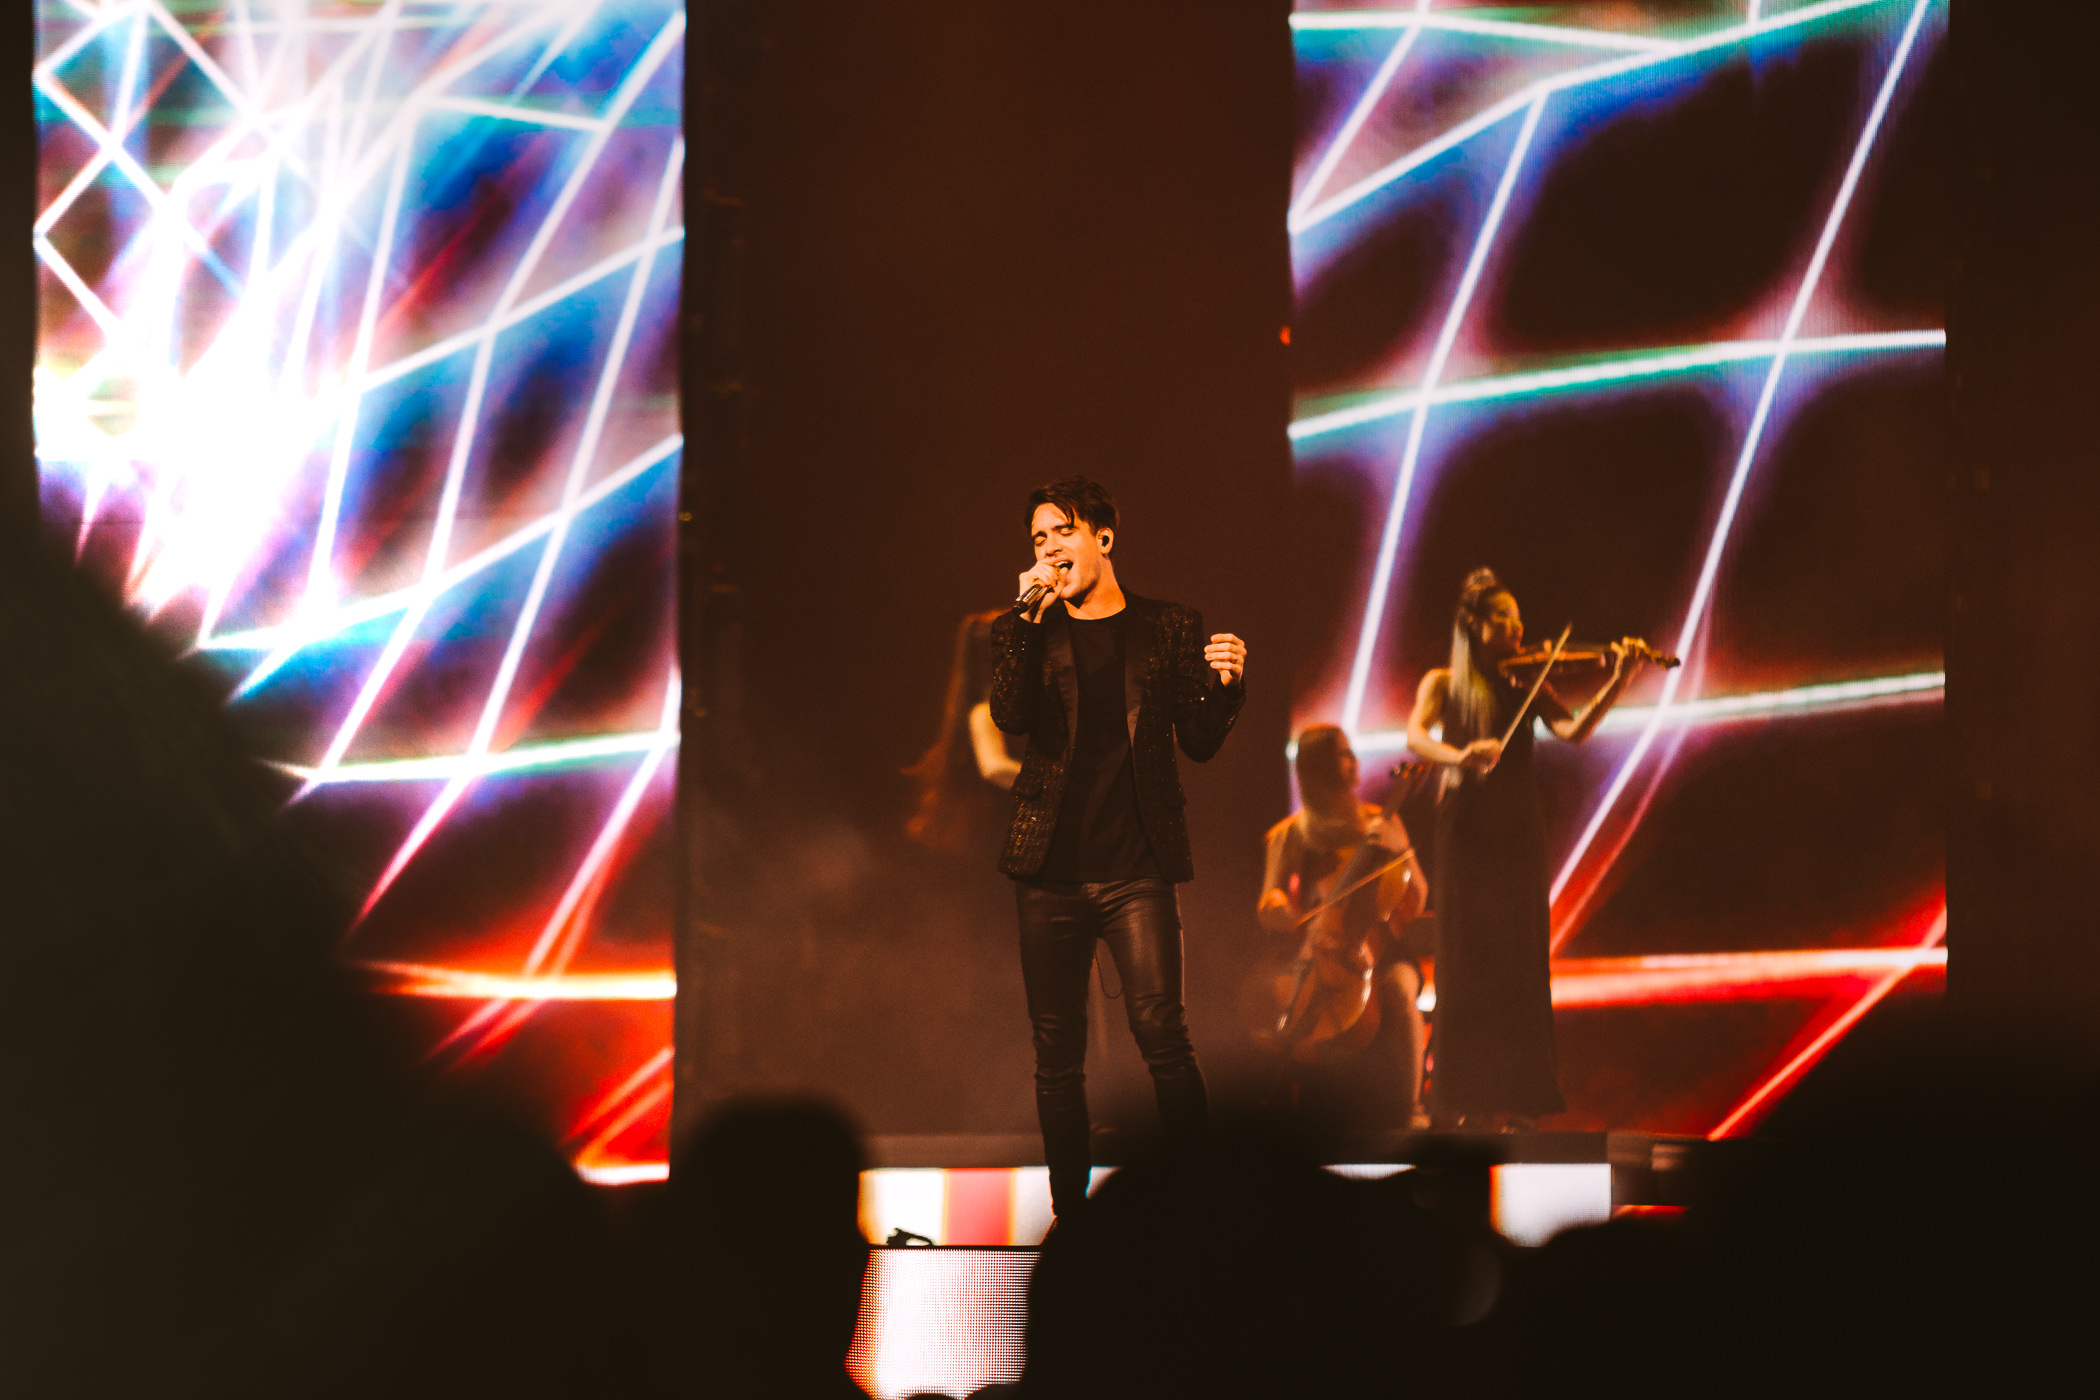 1_Panic!_At_The_Disco-Rogers_Arena-Timothy_Nguyen-20180811-18.jpg